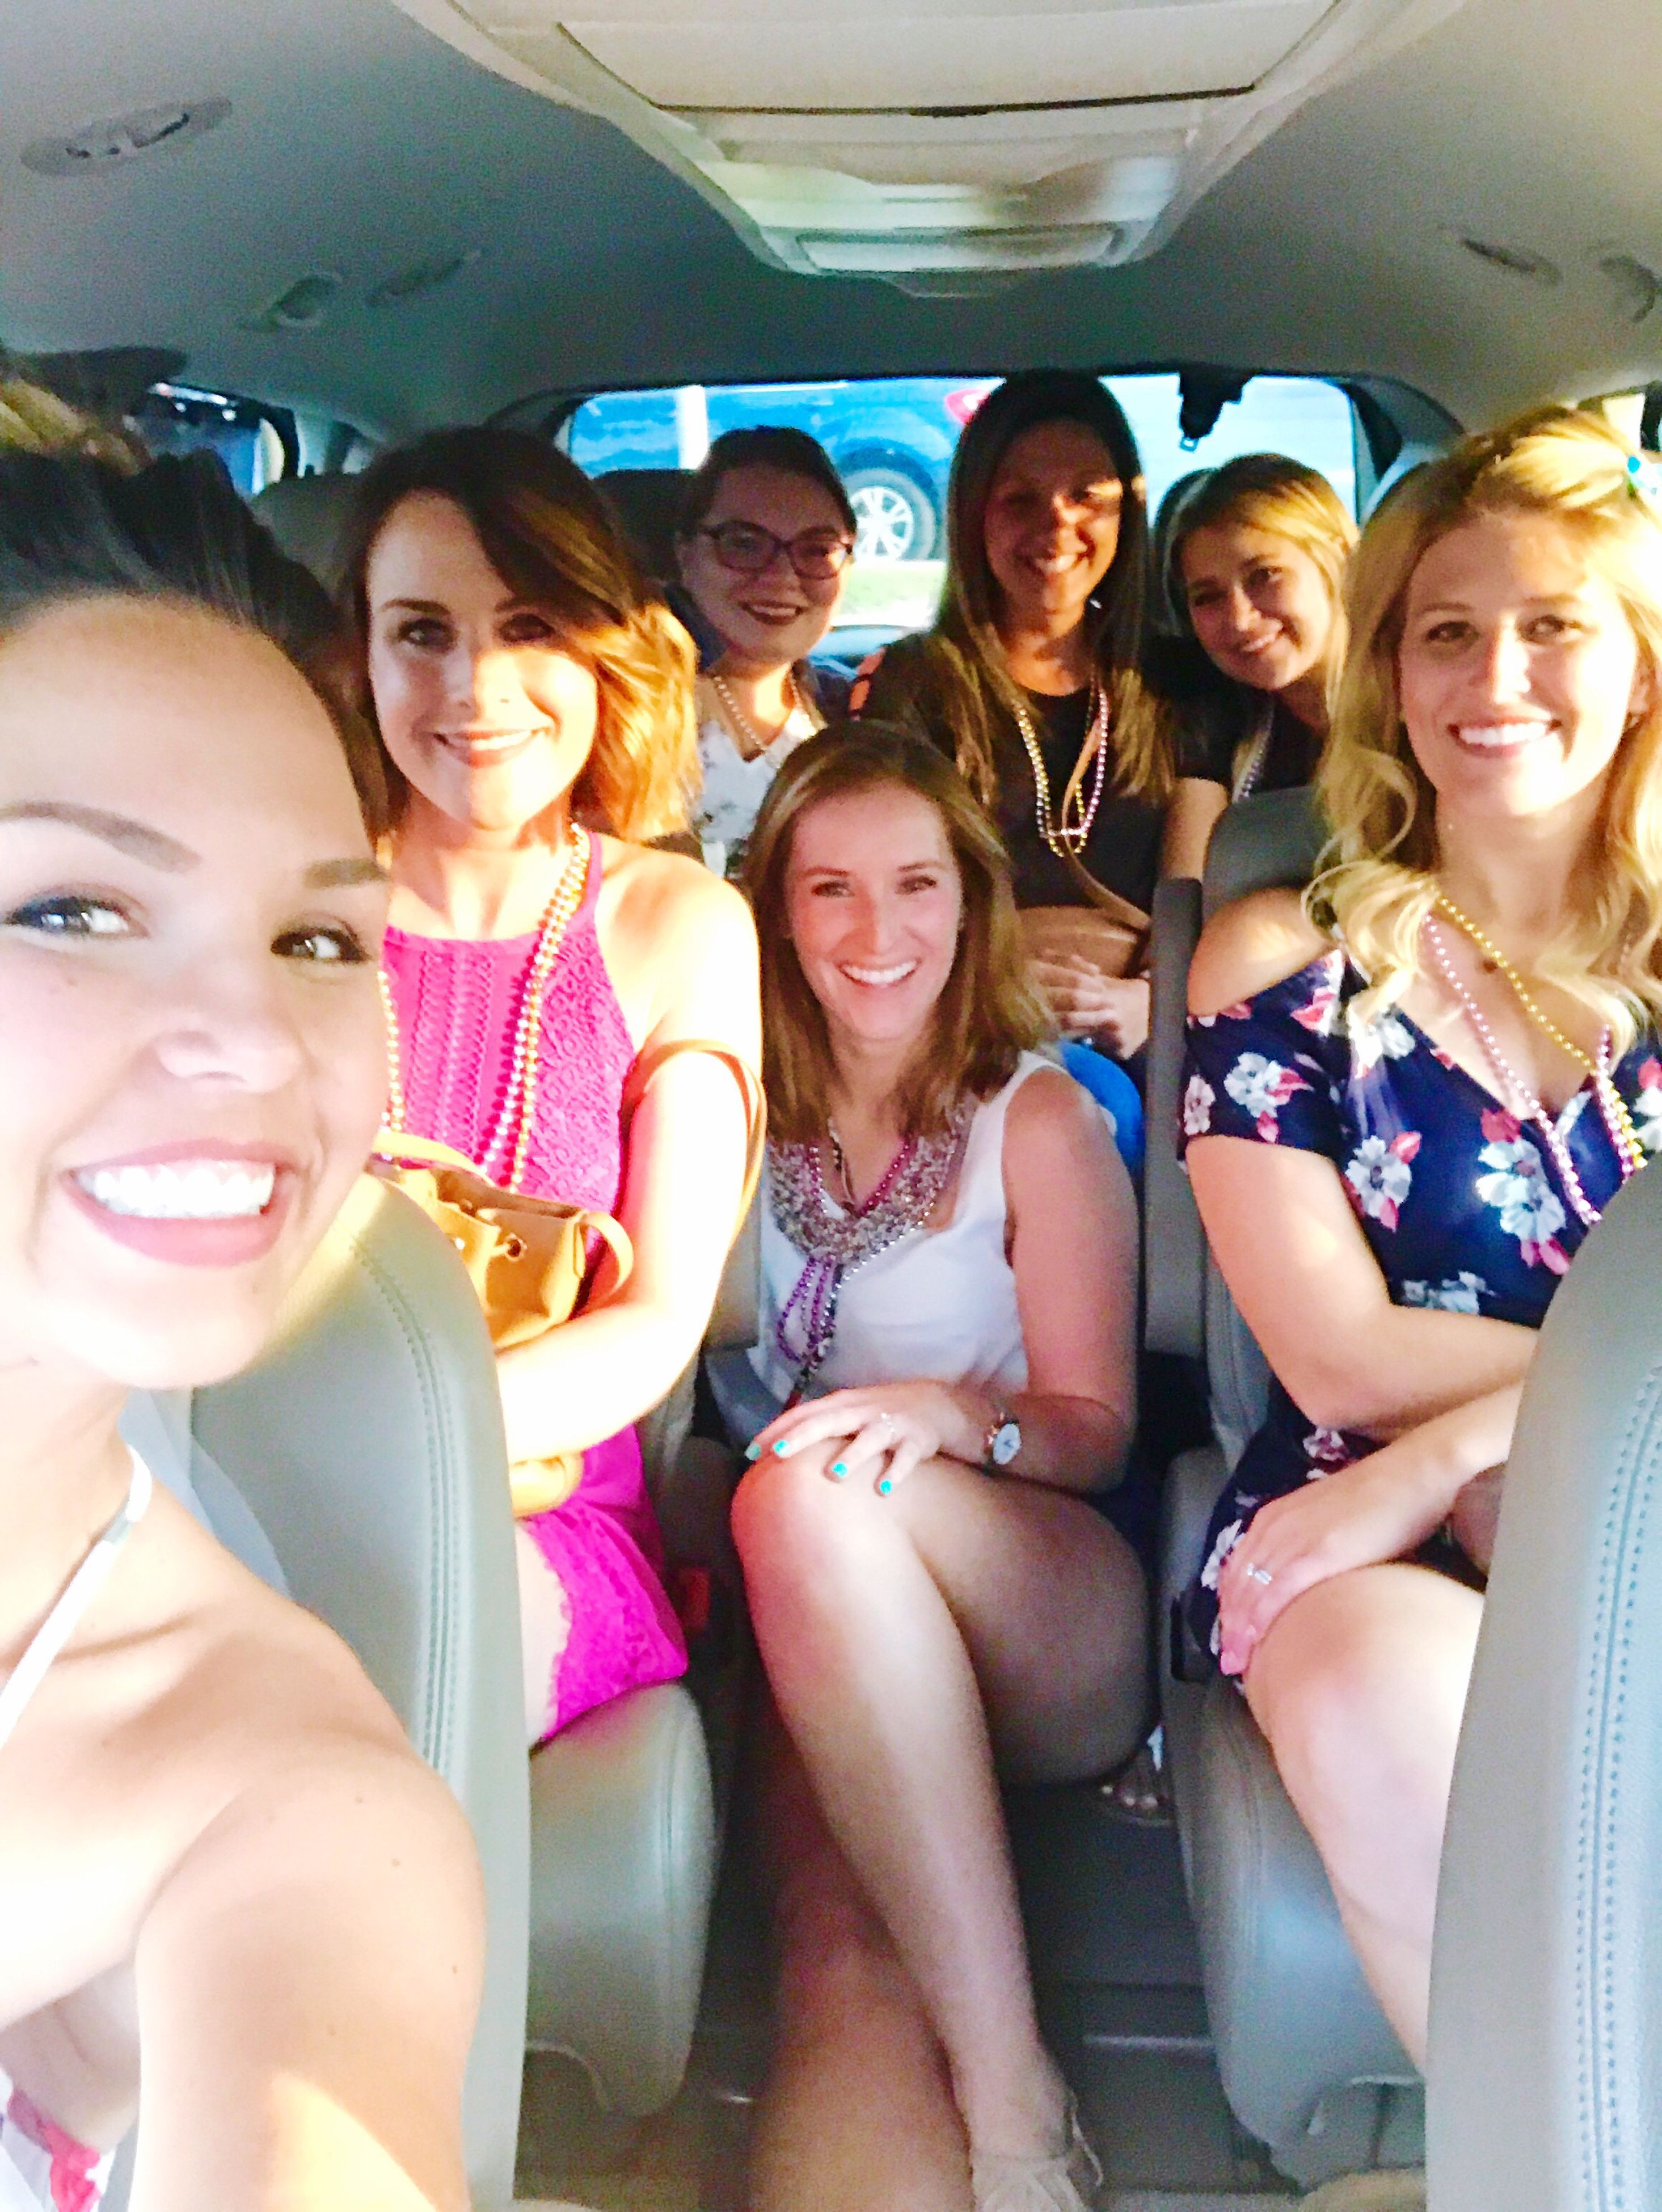 looking at camera, sitting, vehicle interior, portrait, smiling, transportation, happiness, real people, fun, leisure activity, friendship, young women, young adult, casual clothing, cheerful, togetherness, day, car interior, vehicle seat, boys, large group of people, blond hair, outdoors, people